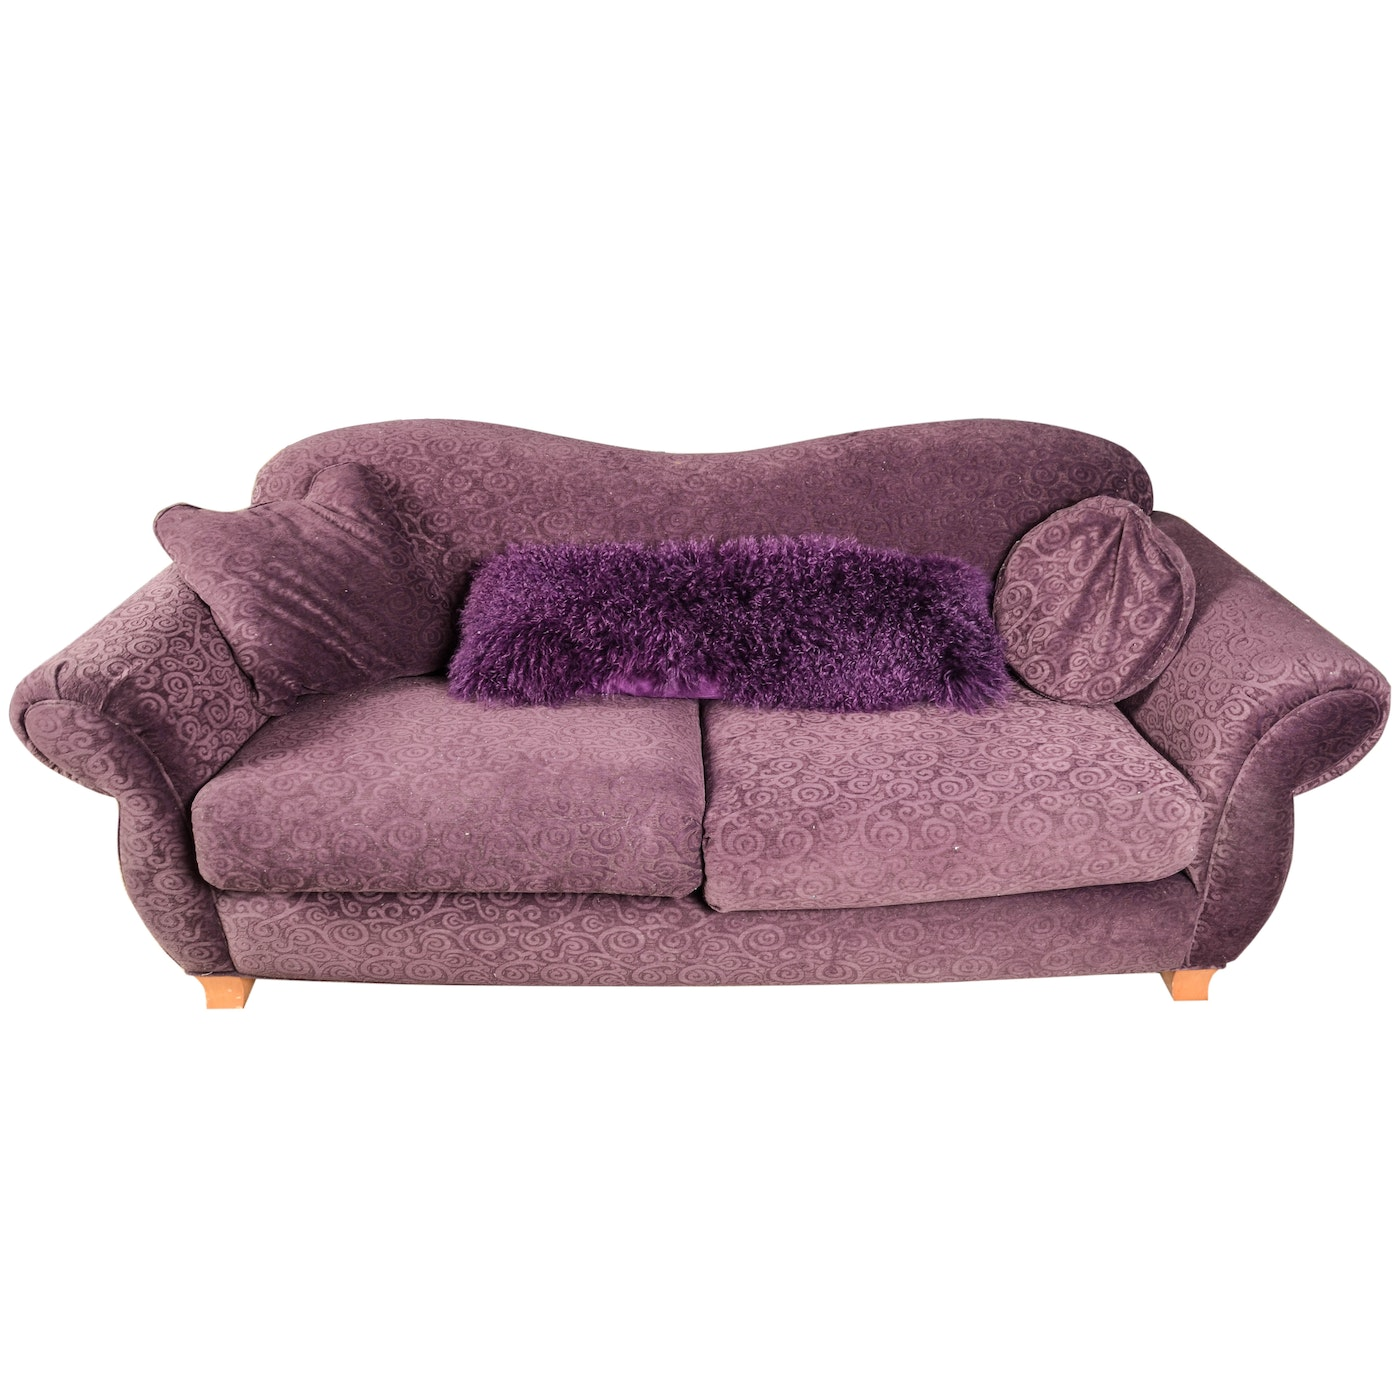 Throw Pillows For Purple Couch : Contemporary Purple Chenille Sofa With Throw Pillows : EBTH